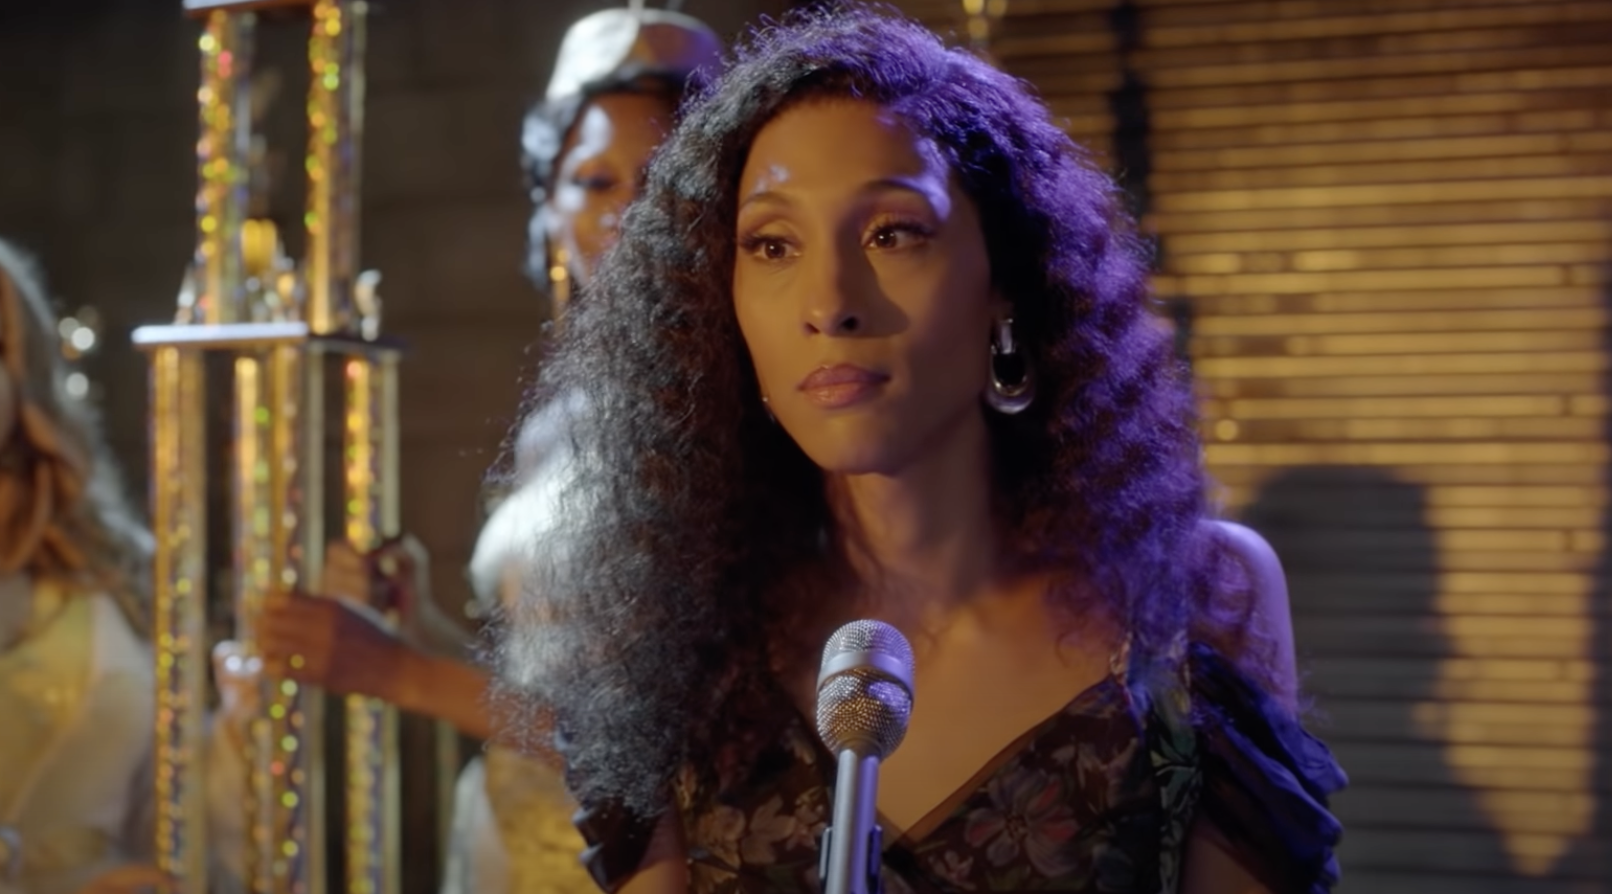 'Pose' Star Mj Rodriguez Cast in Comedy with Maya Rudolph for Apple TV+